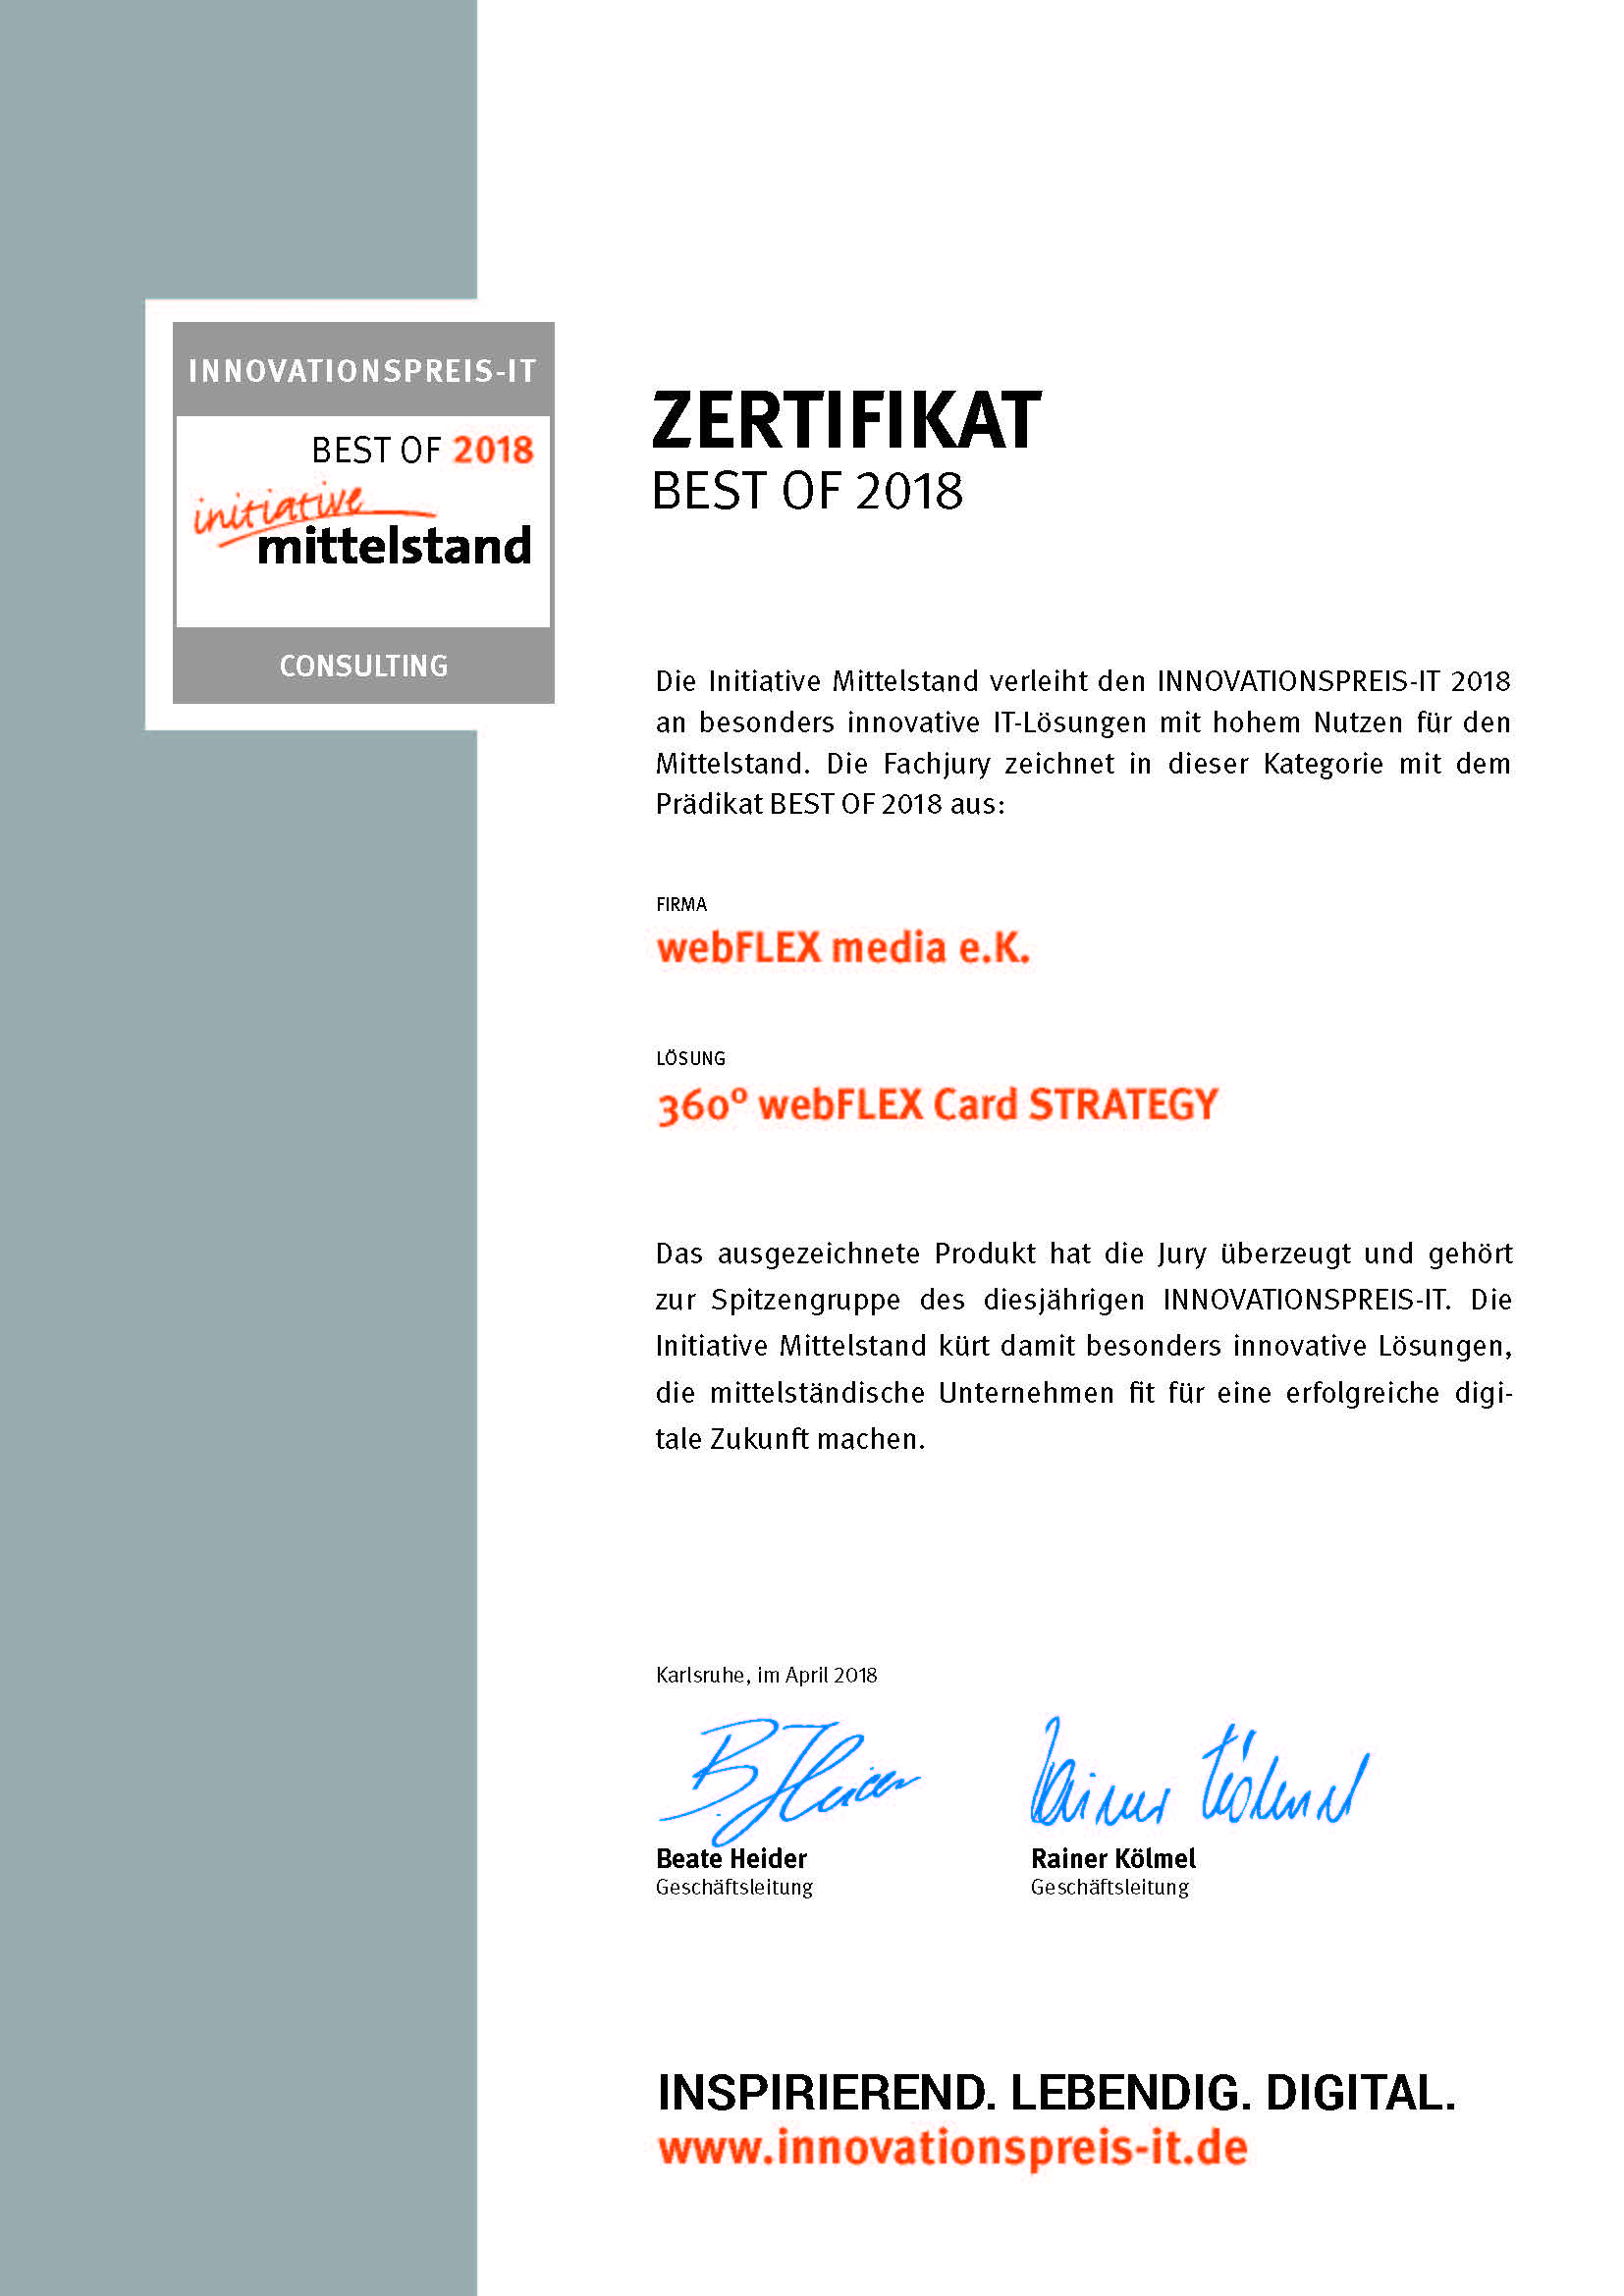 """Zertifikat Innovationspreis-IT """"best of"""" Consulting"""